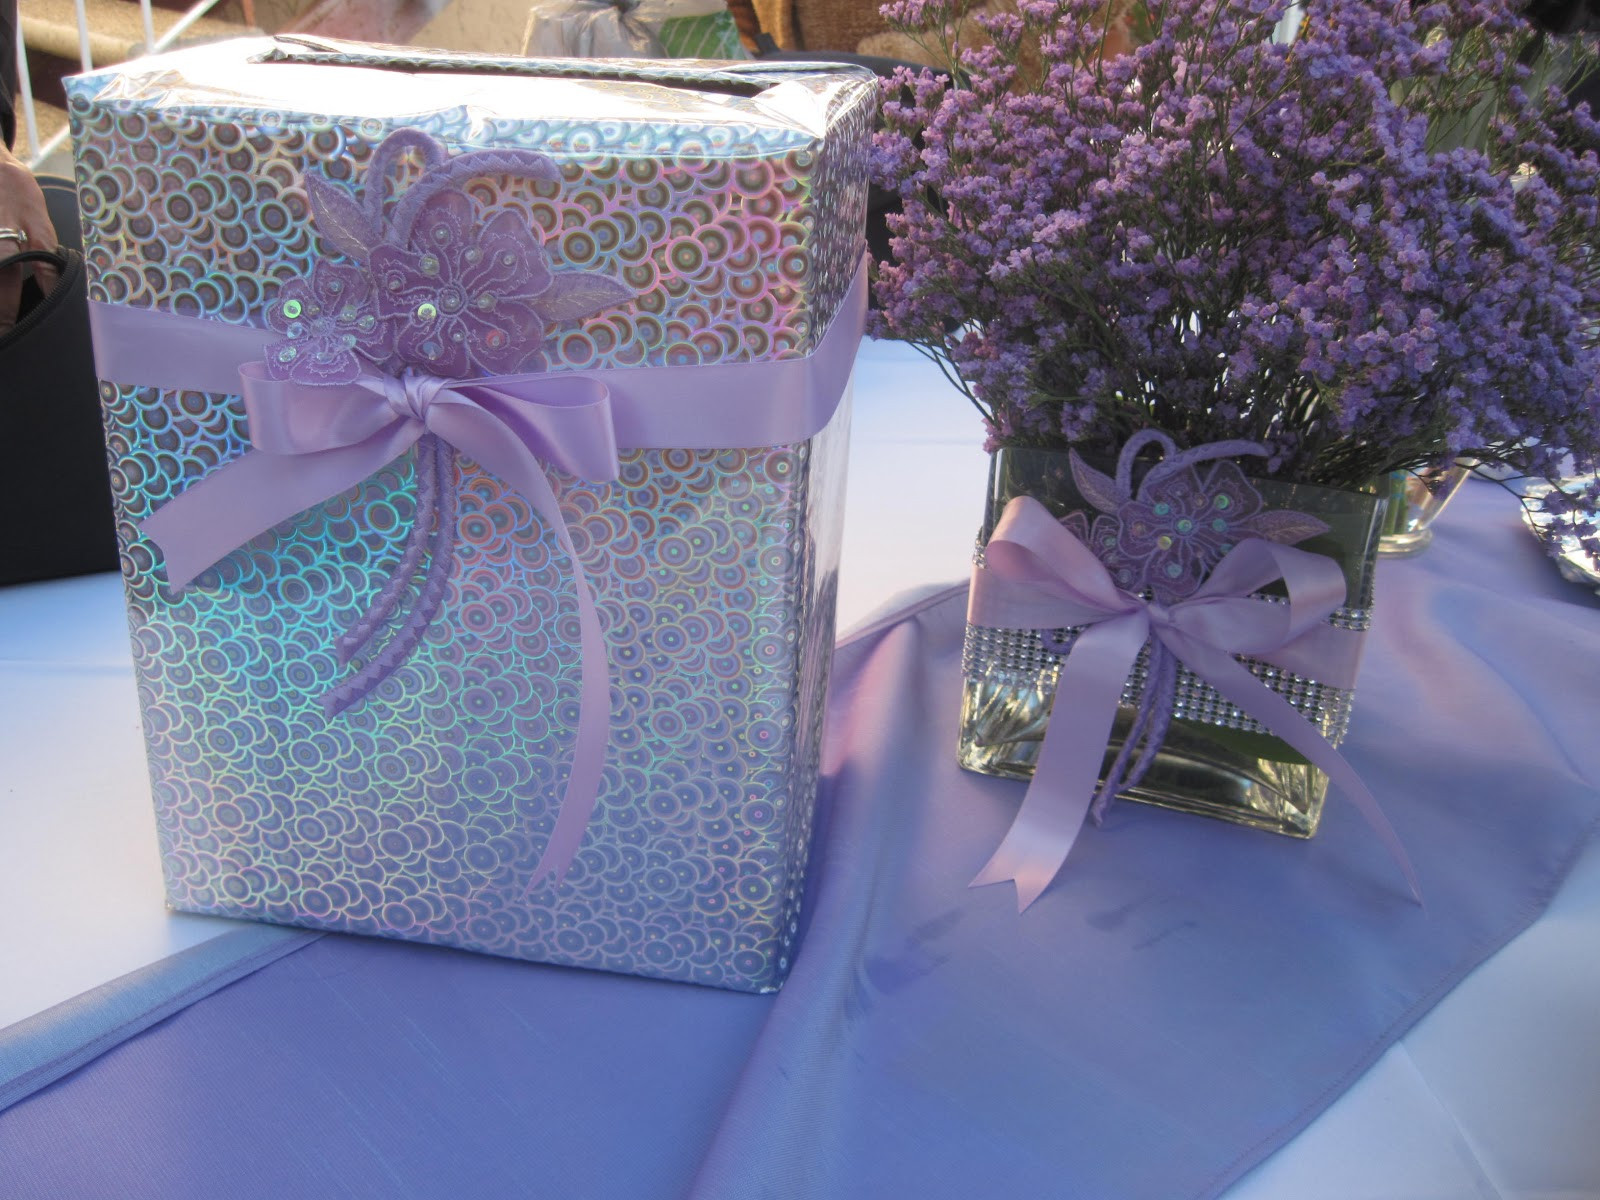 Best ideas about 80th Birthday Party Favors . Save or Pin eve4art 80th Birthday Party Decorations Now.